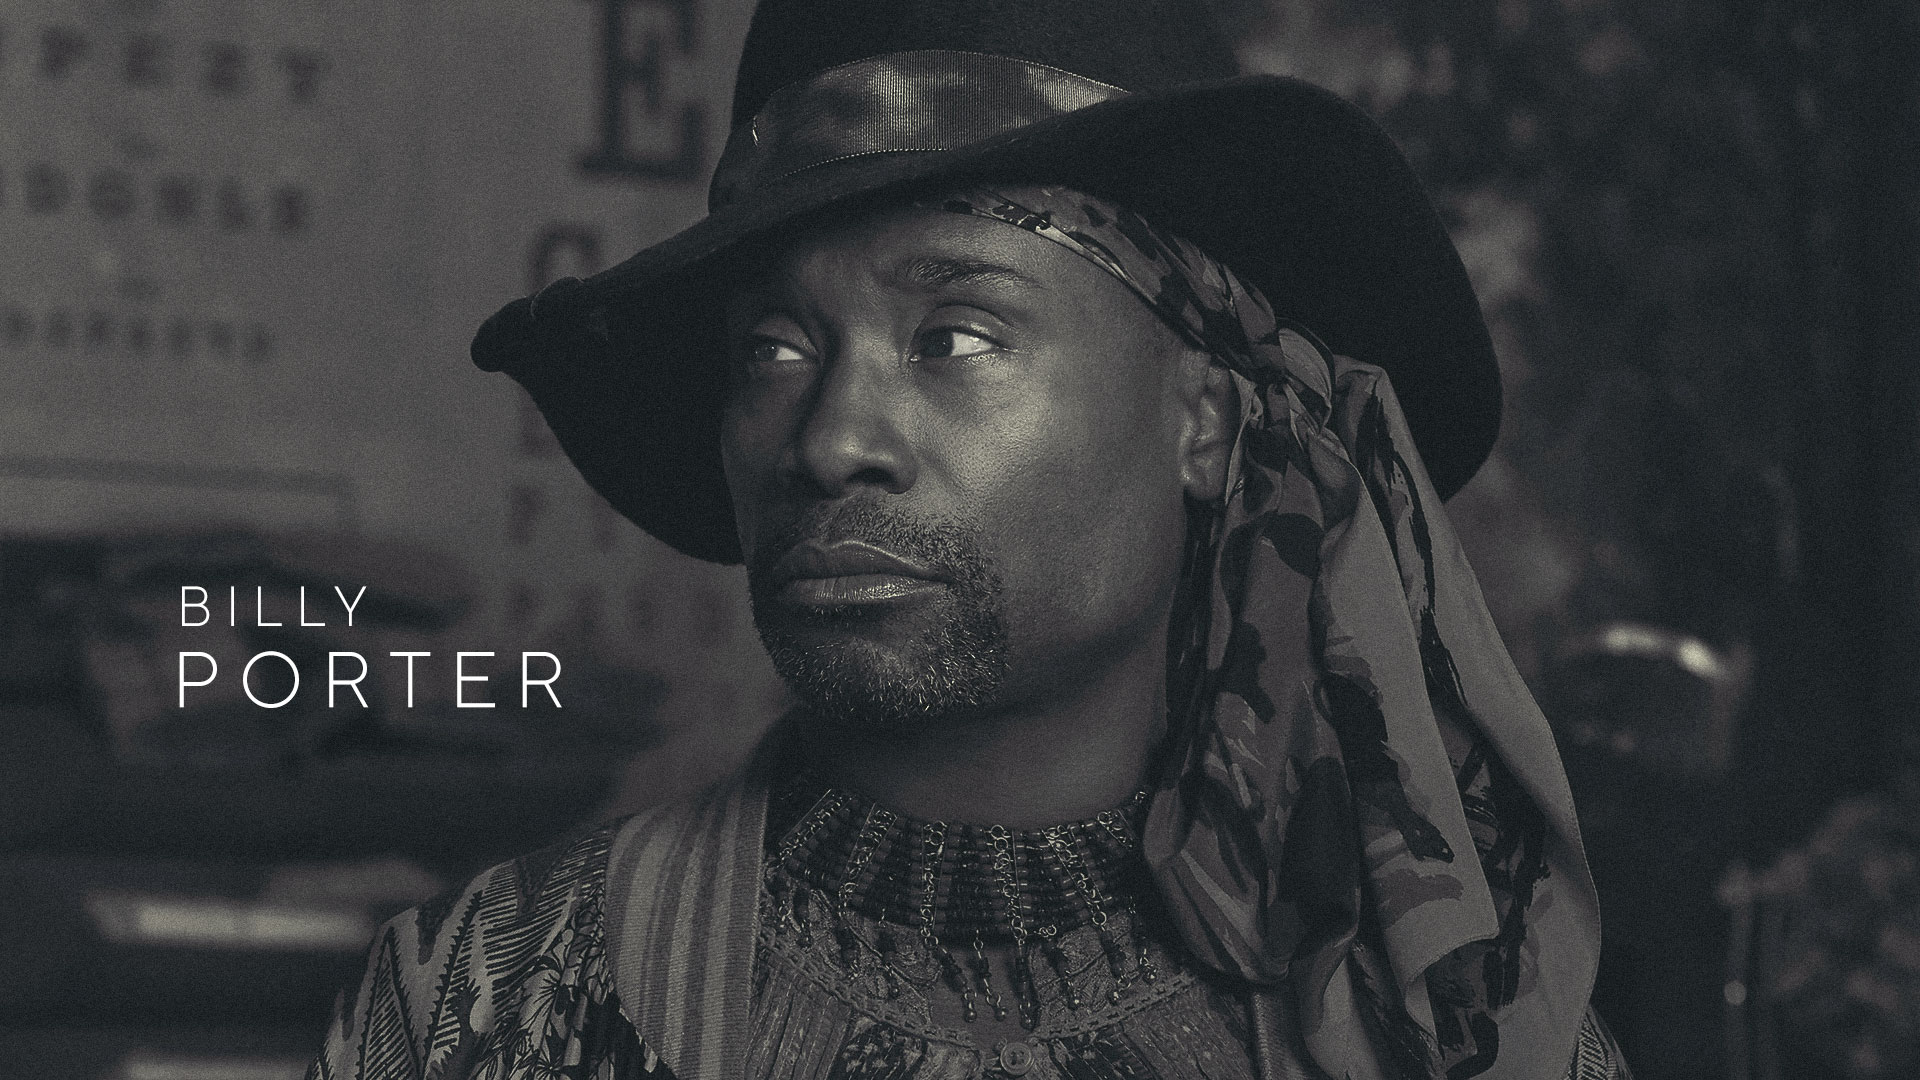 Billy Porter as Keith in